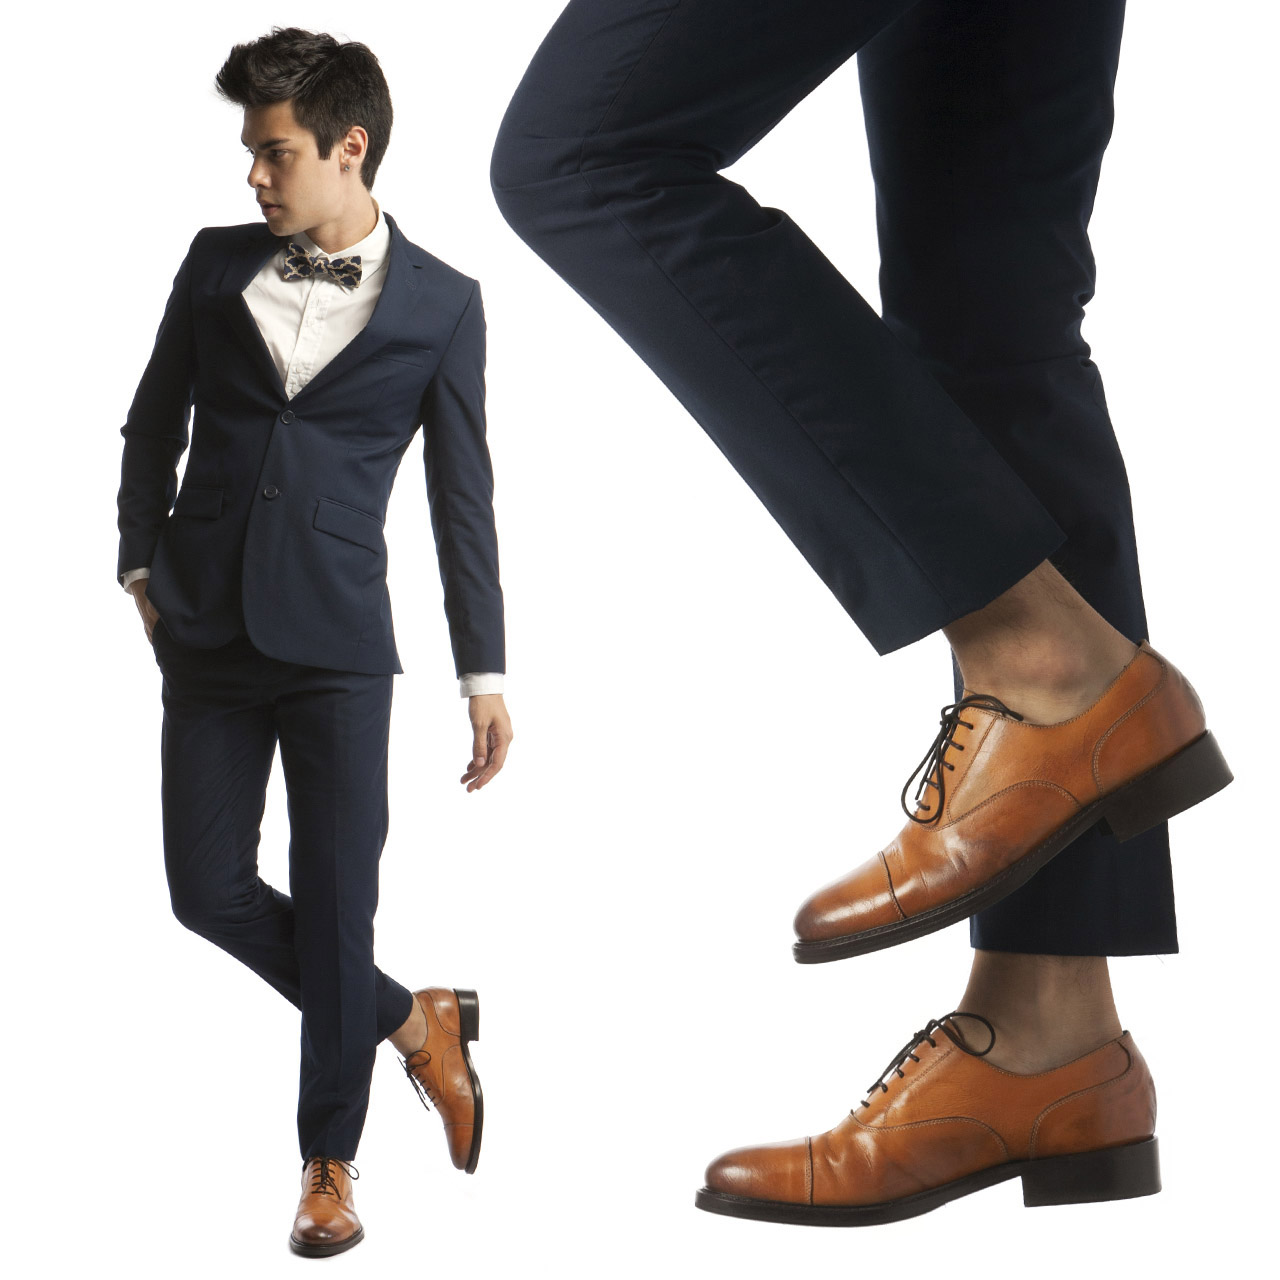 Beverly Hills - Elevator shoes for men | Guidomaggi